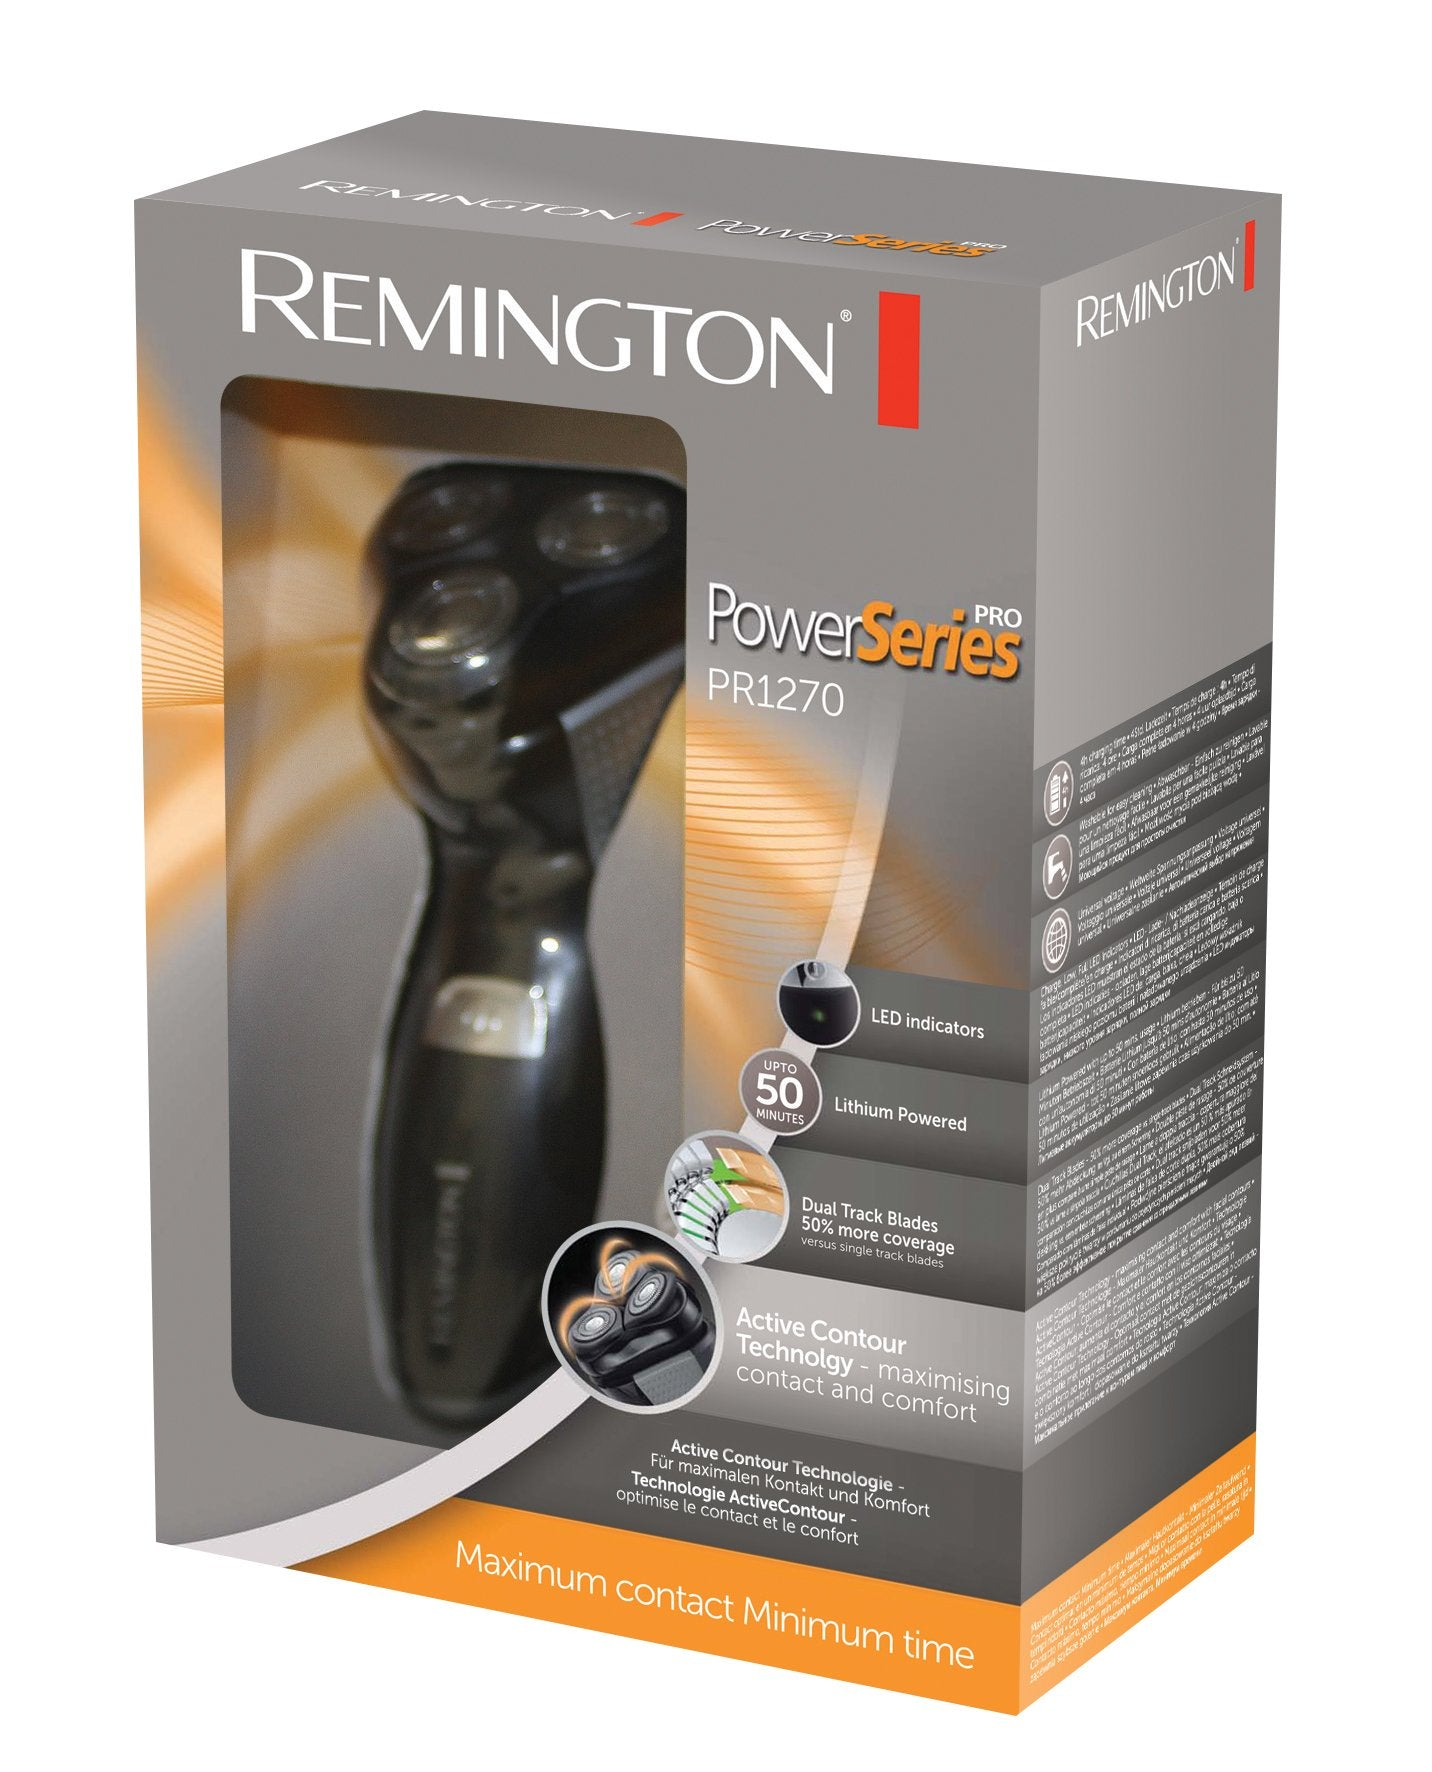 Remington PR1270 Power Series Electric Shaver - Remington - Pazarska